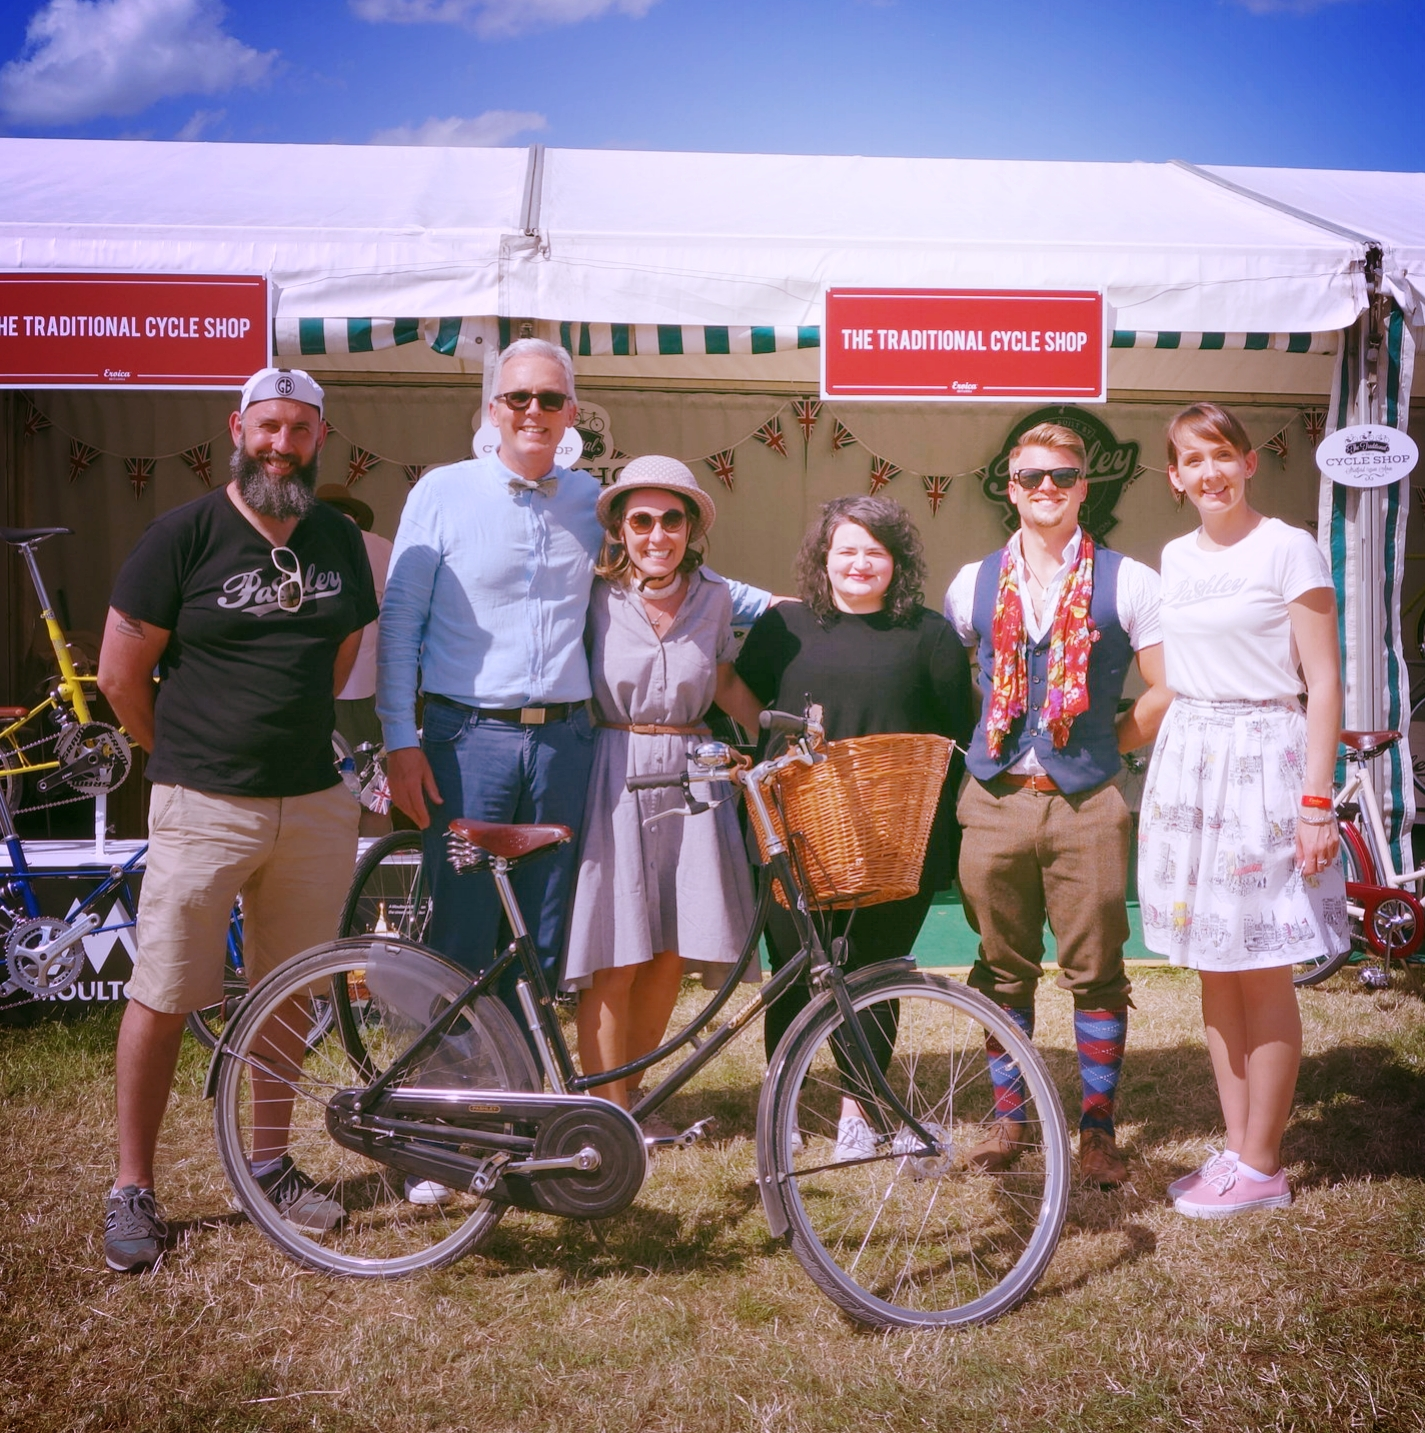 From left: Fran, The Traditional Cycle Shop;Adrian, Pashley MD; Monya from Brazil;Hannah, Blake and Chloe - all from Pashley.